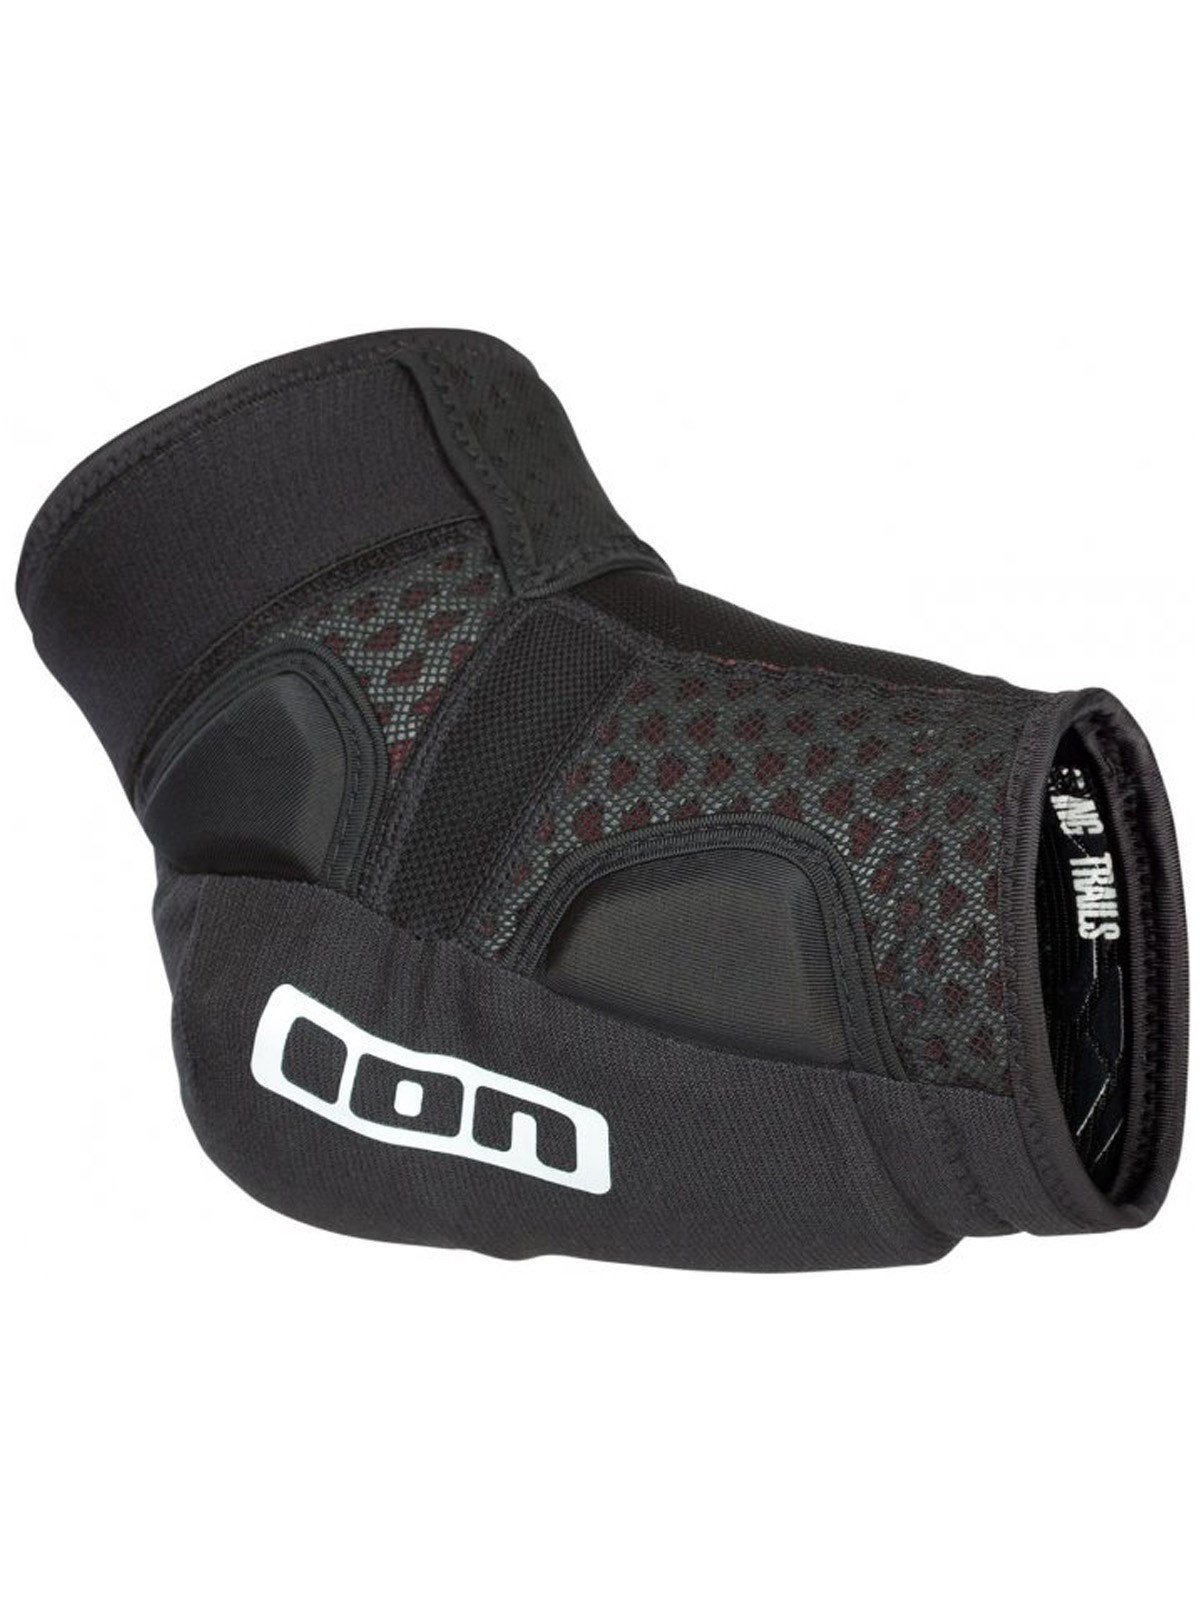 ION E-Pact Elbow Pad Black, S by ION (Image #1)